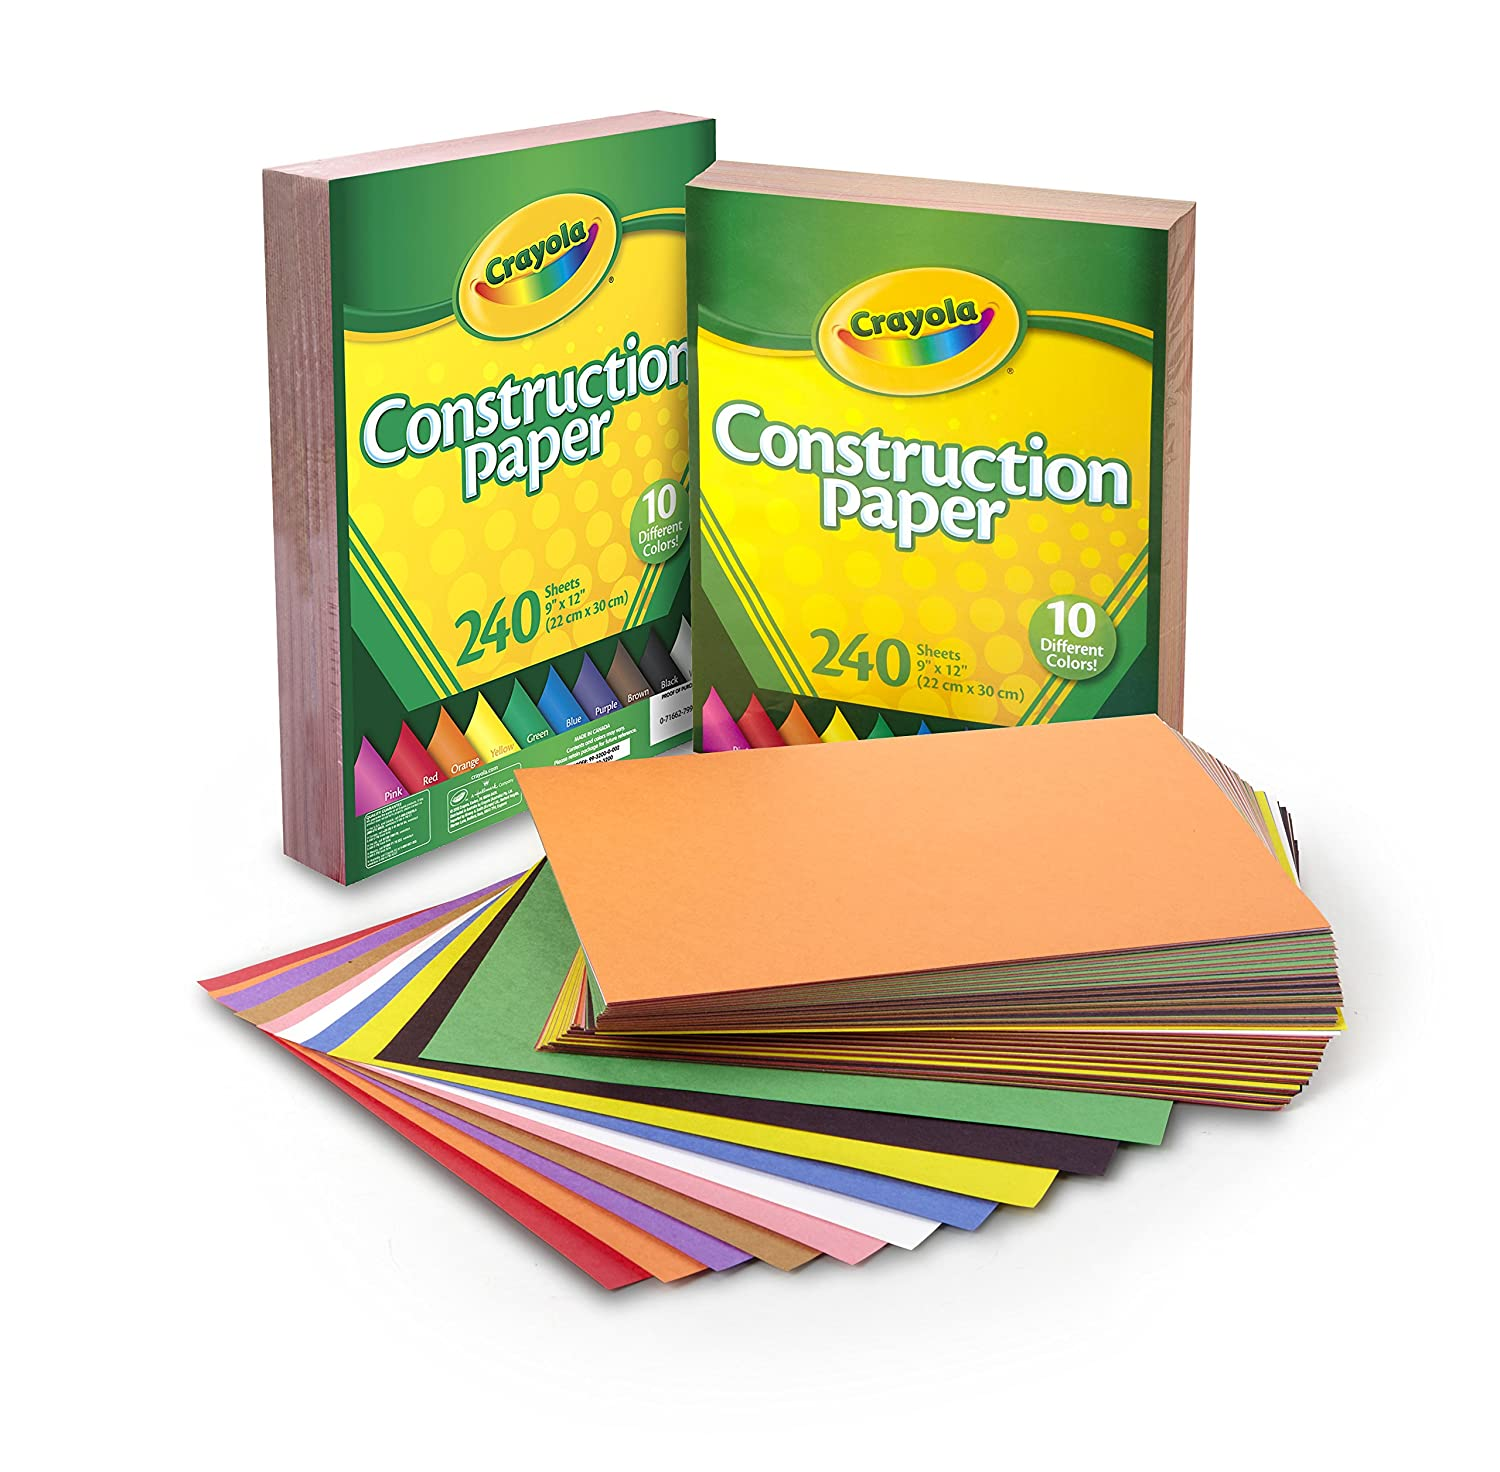 Crayola Construction Paper, 480 Count, 2-Packs of 240 Each, 10, great for Arts & Crafts, Home or School Projects Binney & Smith 99-0013